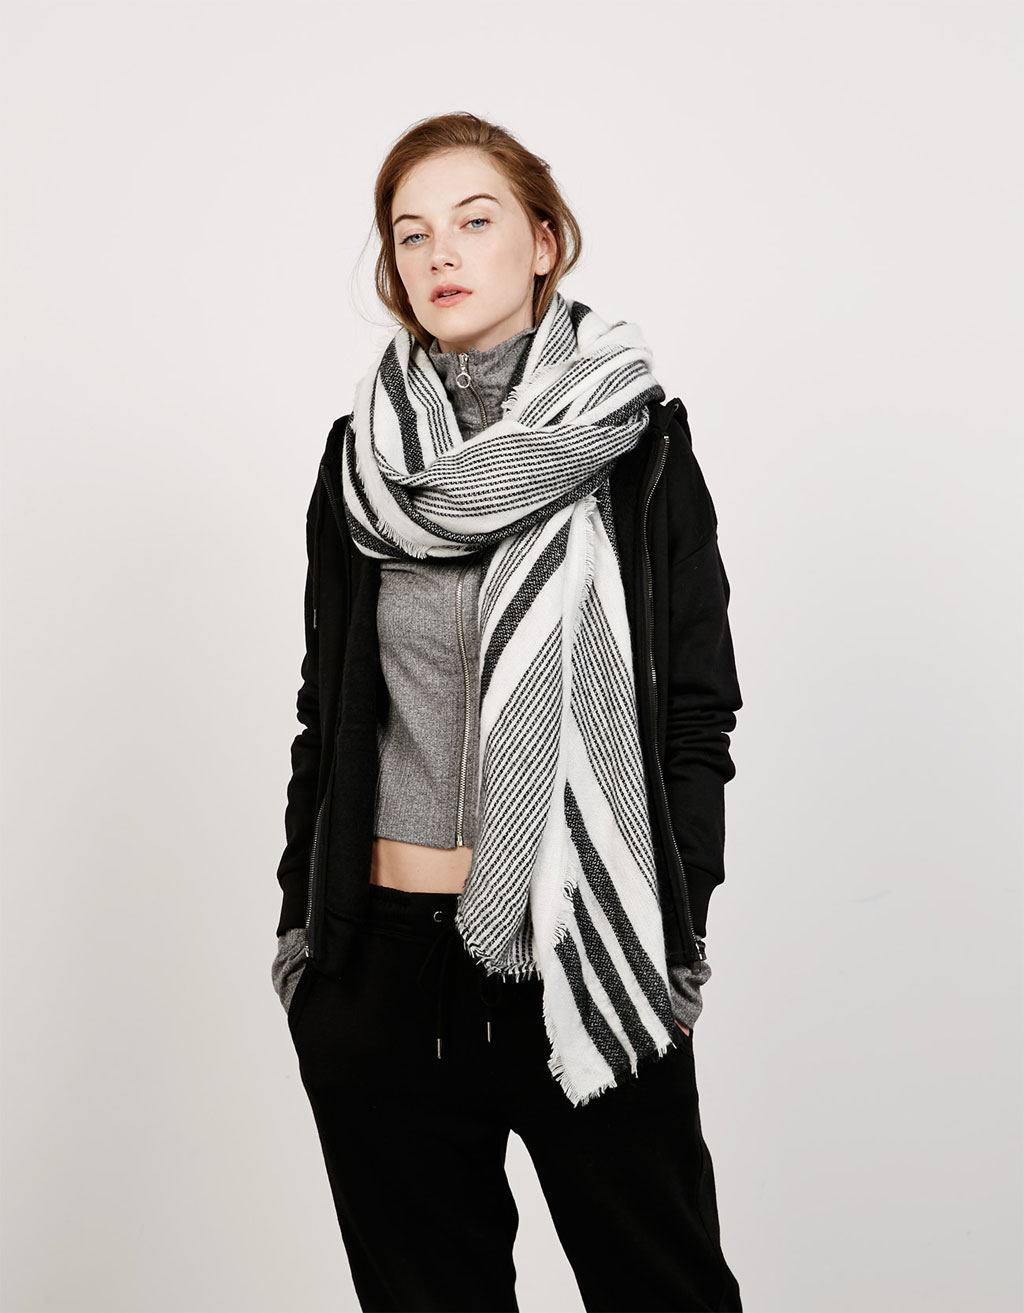 Black and white striped headscarf